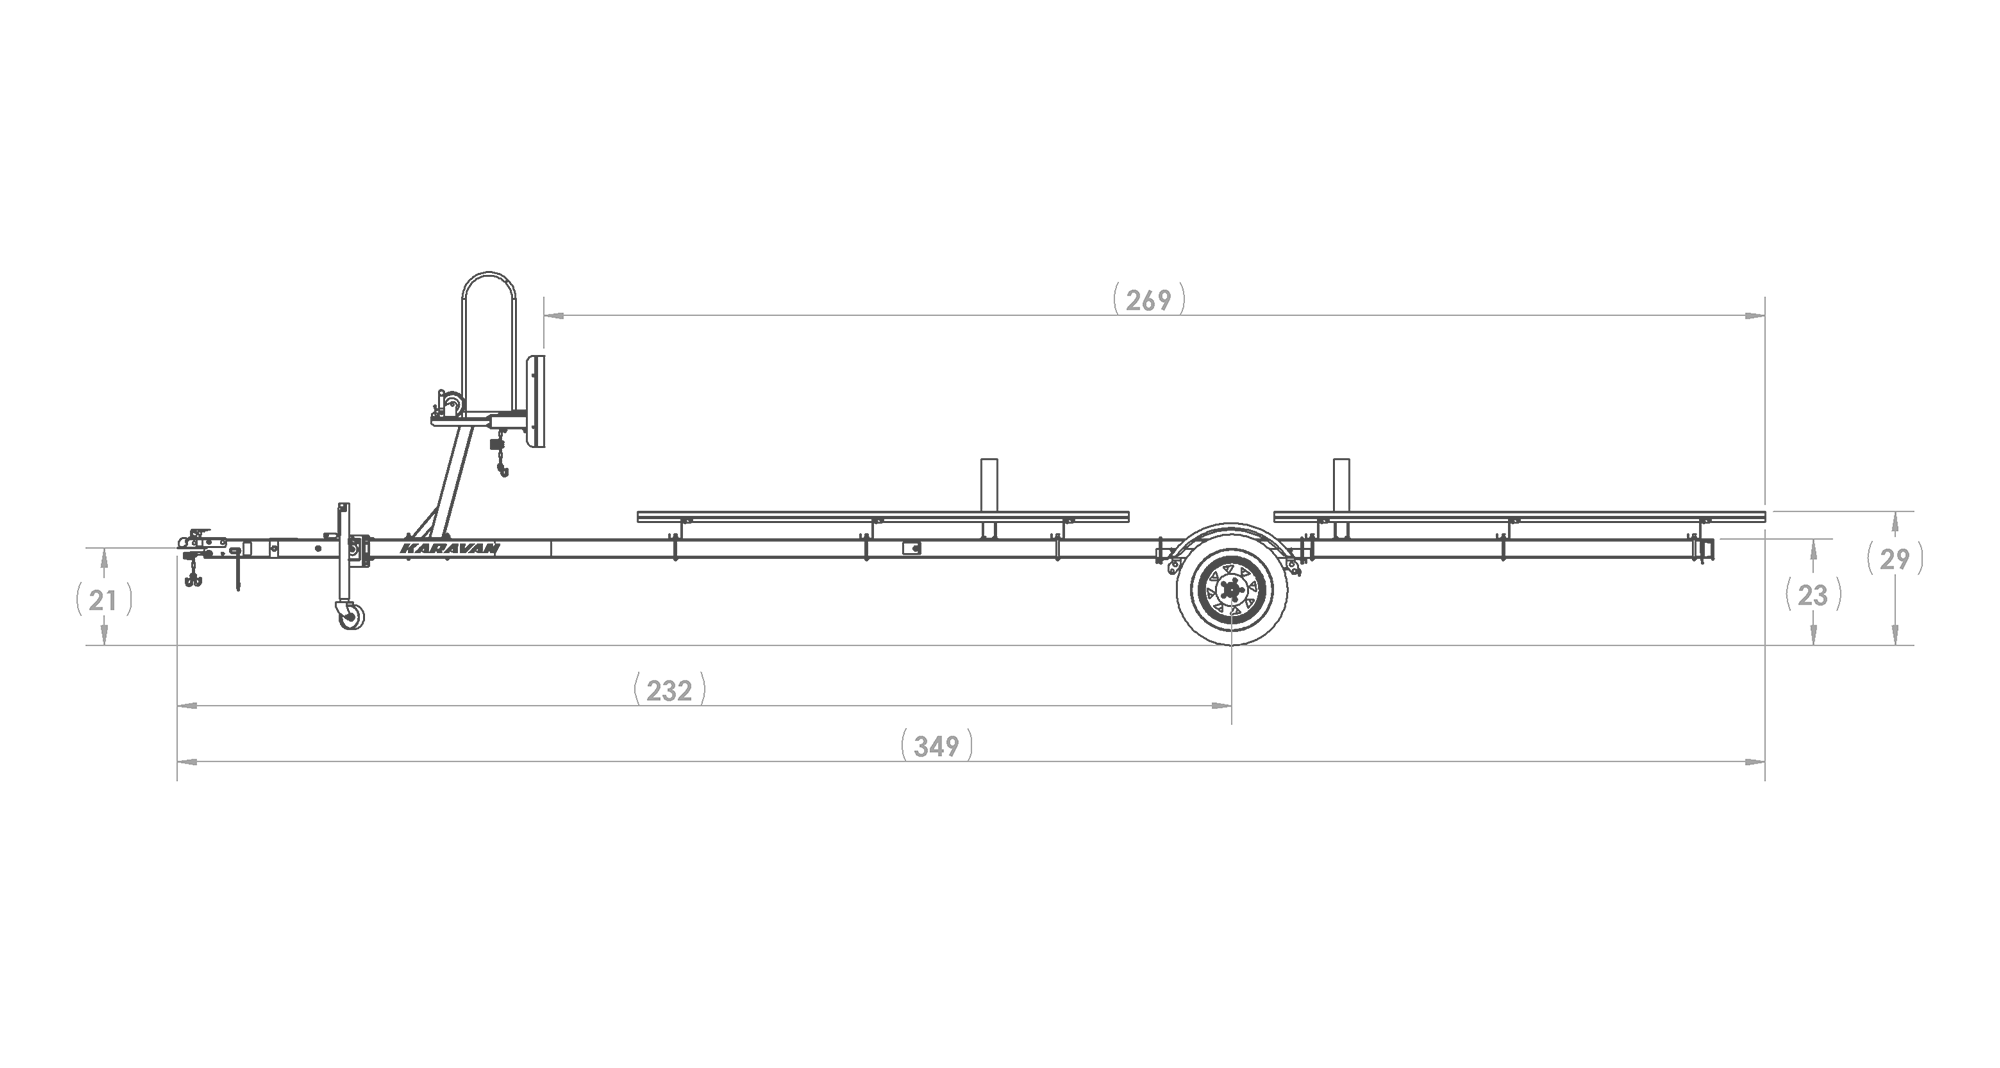 Karavan Trailer's Single Axel Large Pontoon Trailer, model number KDP-2225, Side View Measurement